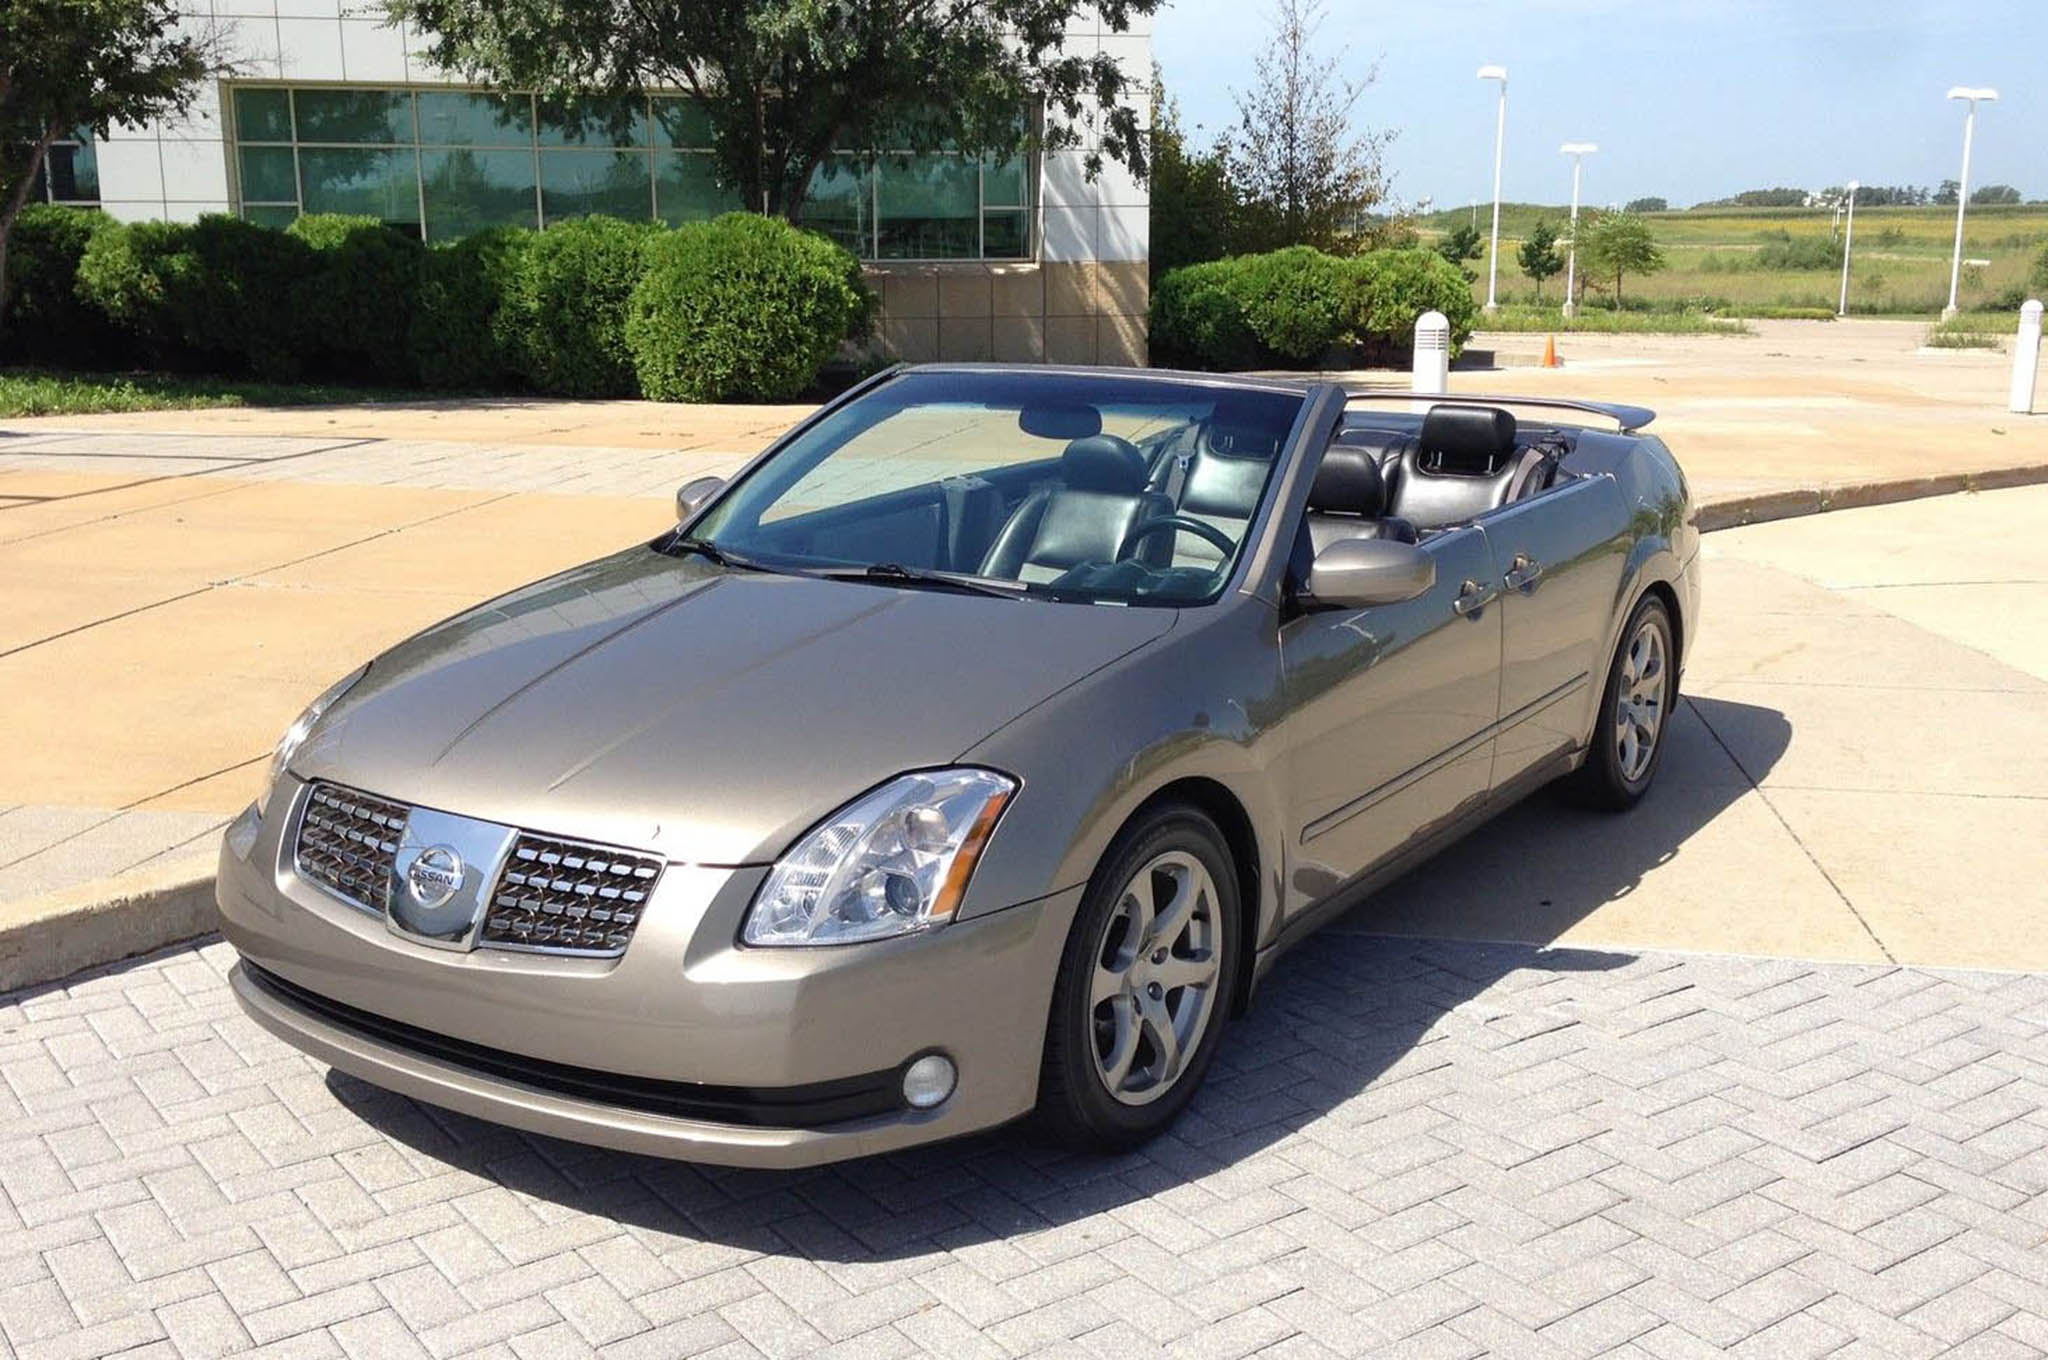 2004 Nissan Maxima Convertible is a Strange eBay Find